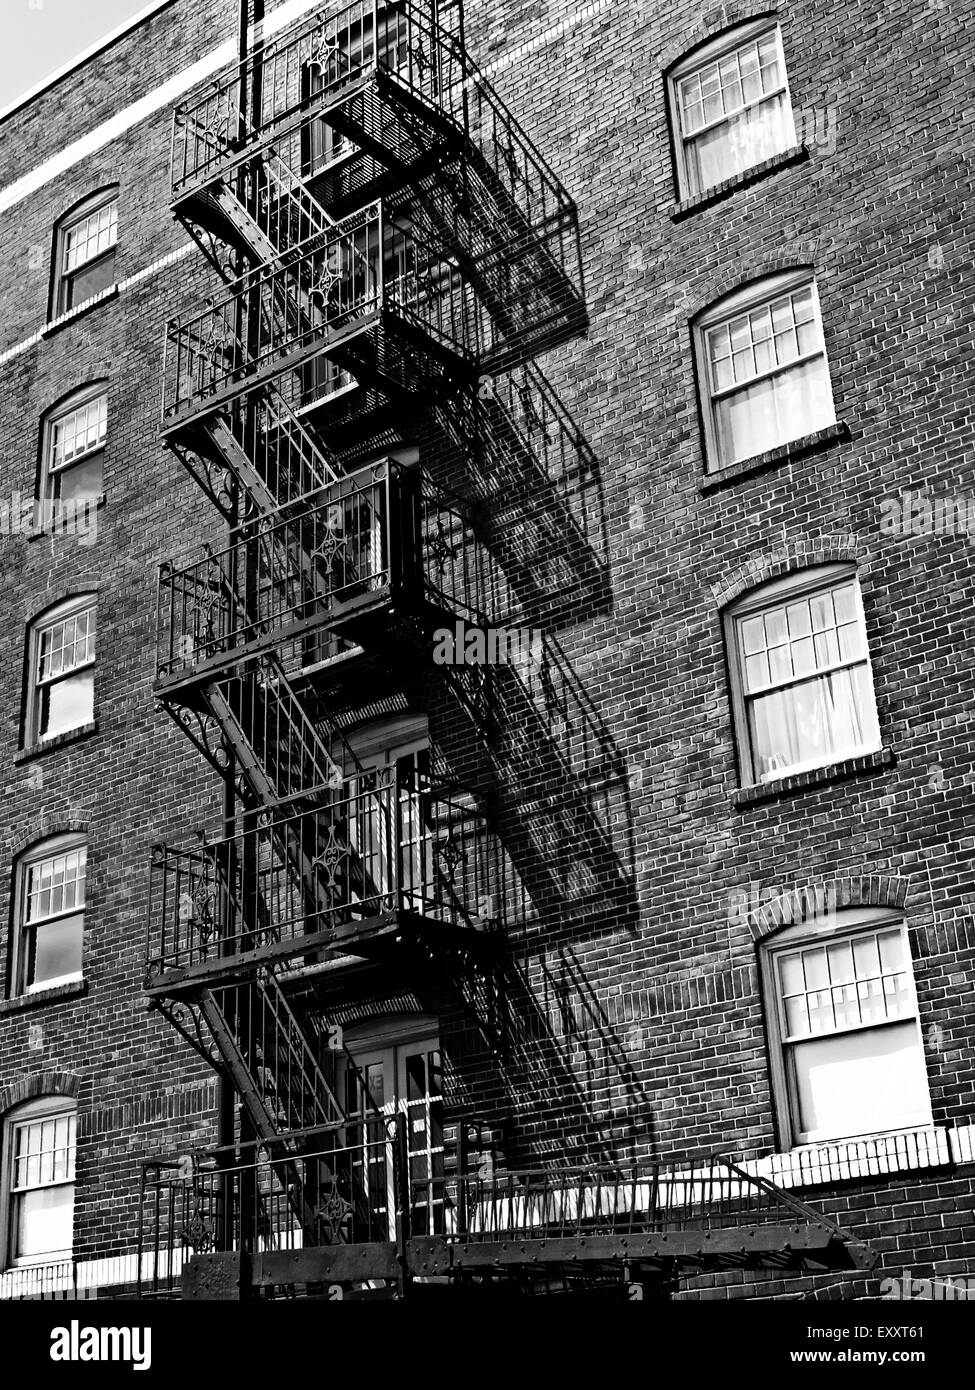 Fire Escape With Shadows On A Brick Apartment Building. Capitol Hill,  Seattle Washington